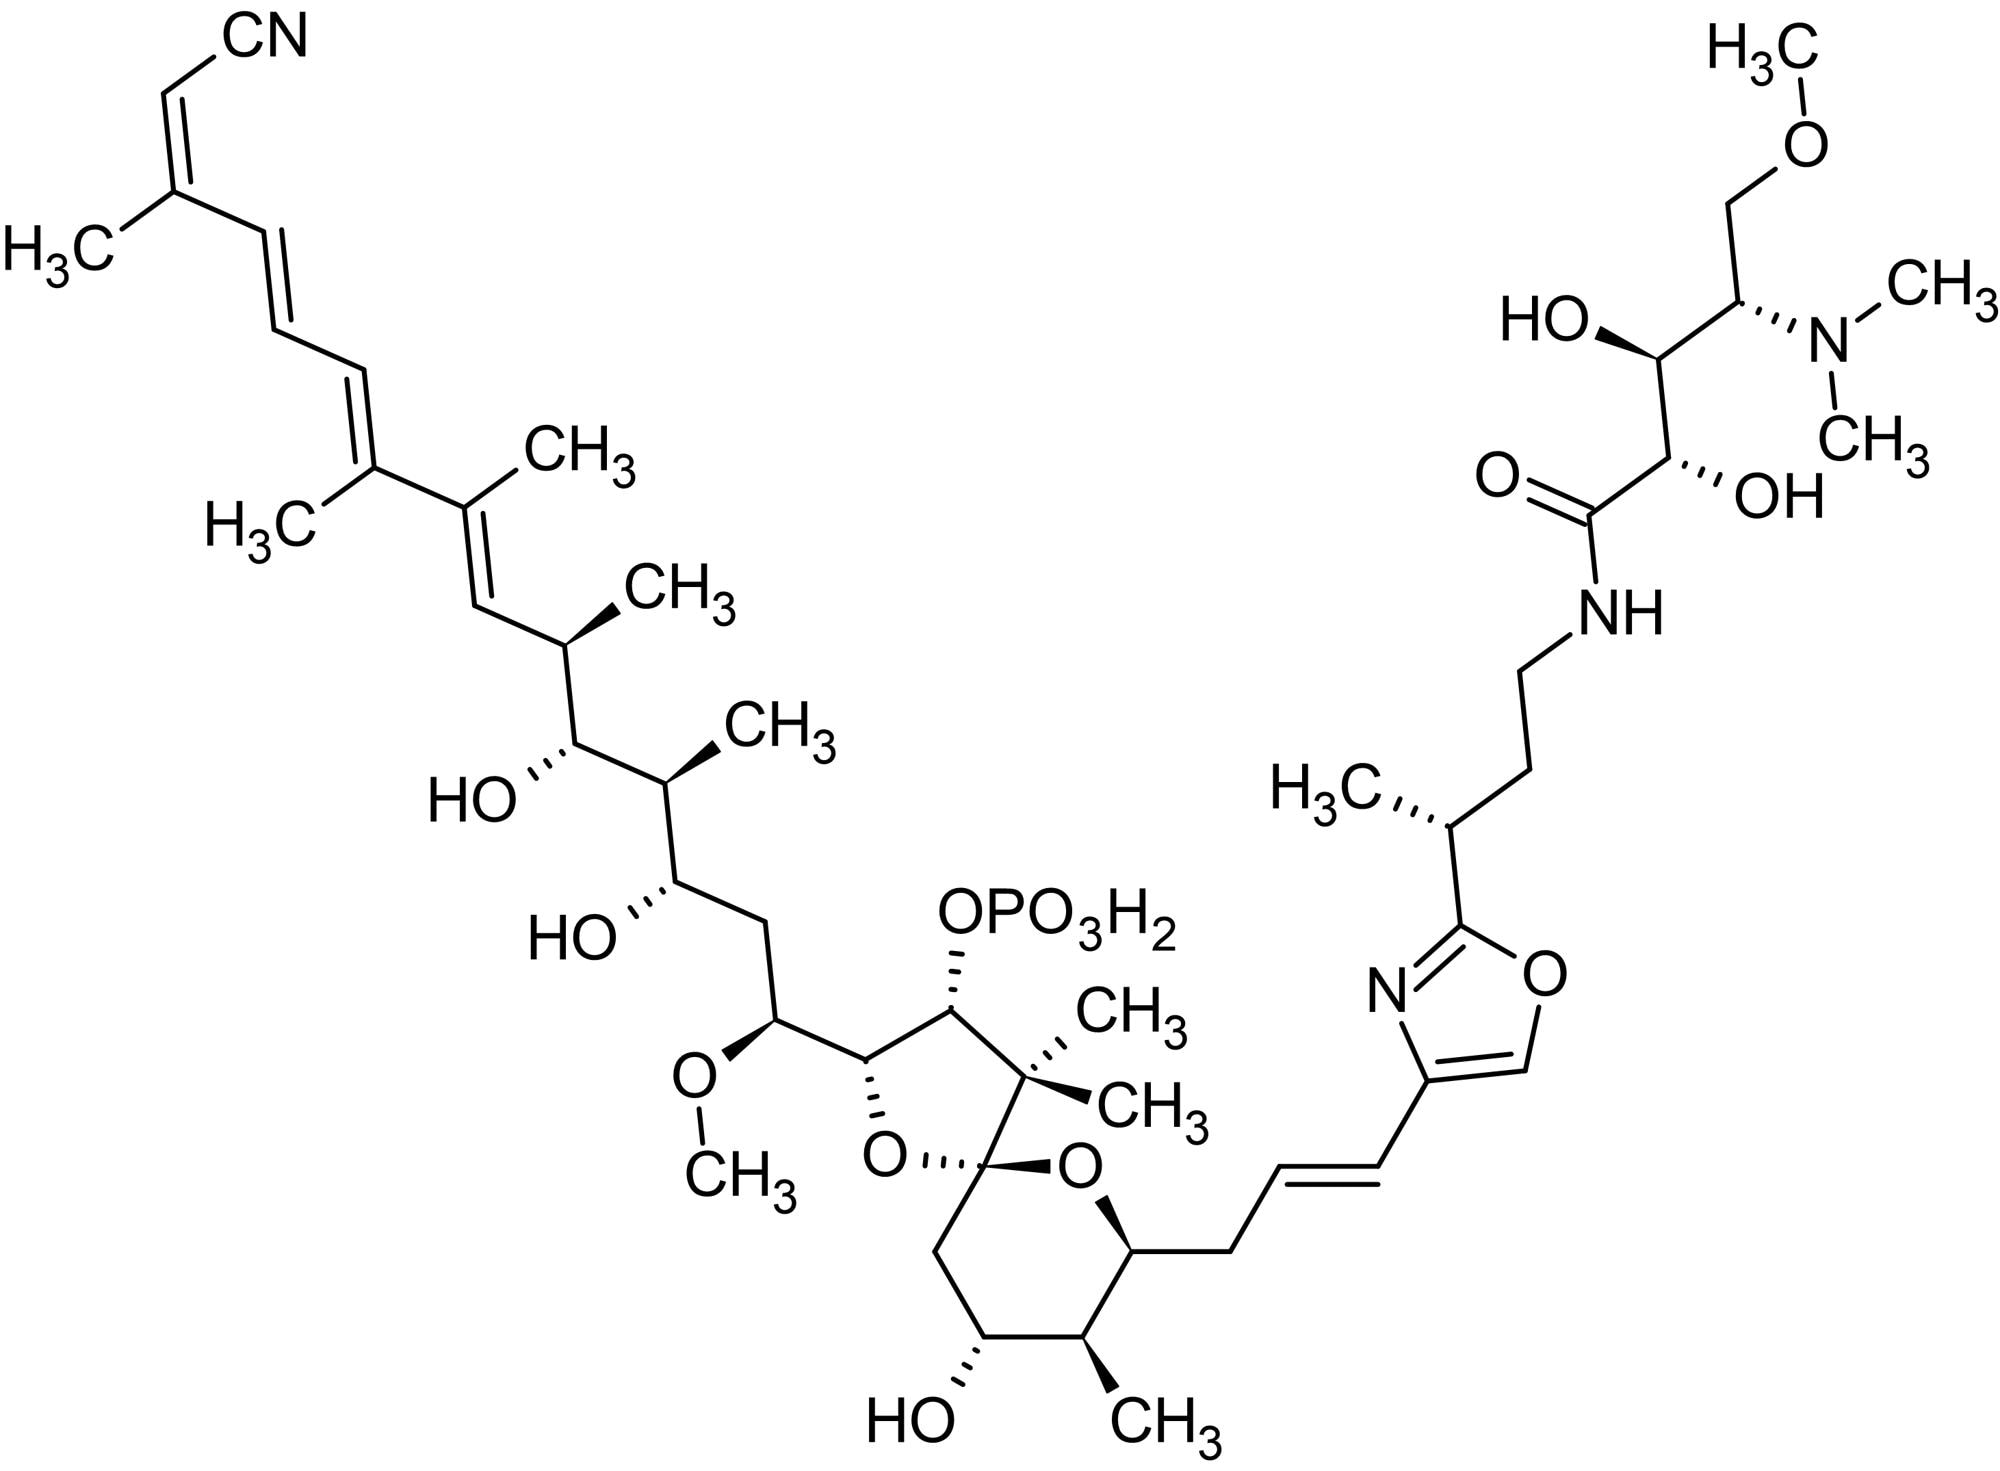 Chemical Structure - Calyculin A, protein phosphatase inhibitor (ab141784)